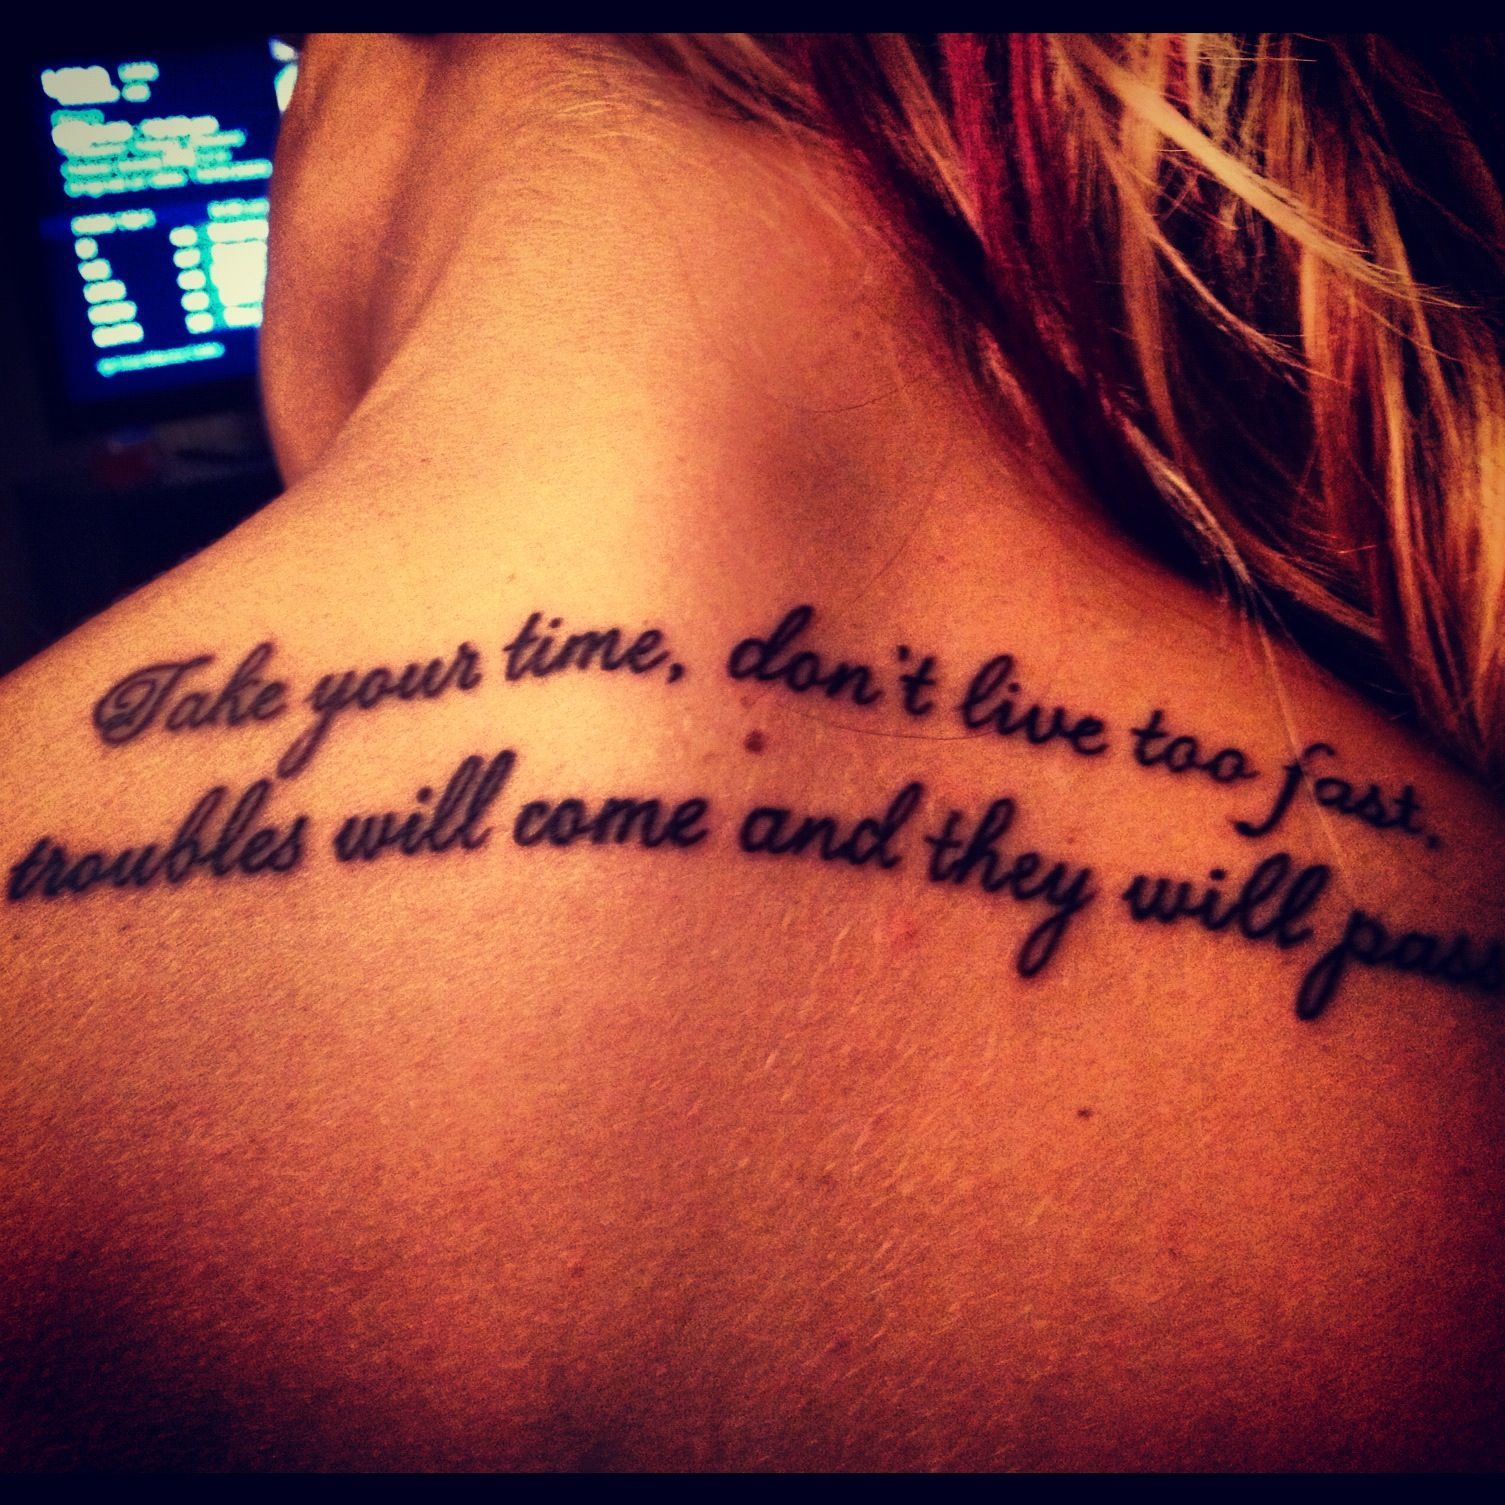 Inspiration Tattoo Lynyrd Skynyrd Simpleman Take Your Time Don T Live Too Fast Troubles Will Come And They Writing Tattoos Lyric Tattoos Tattoos For Guys